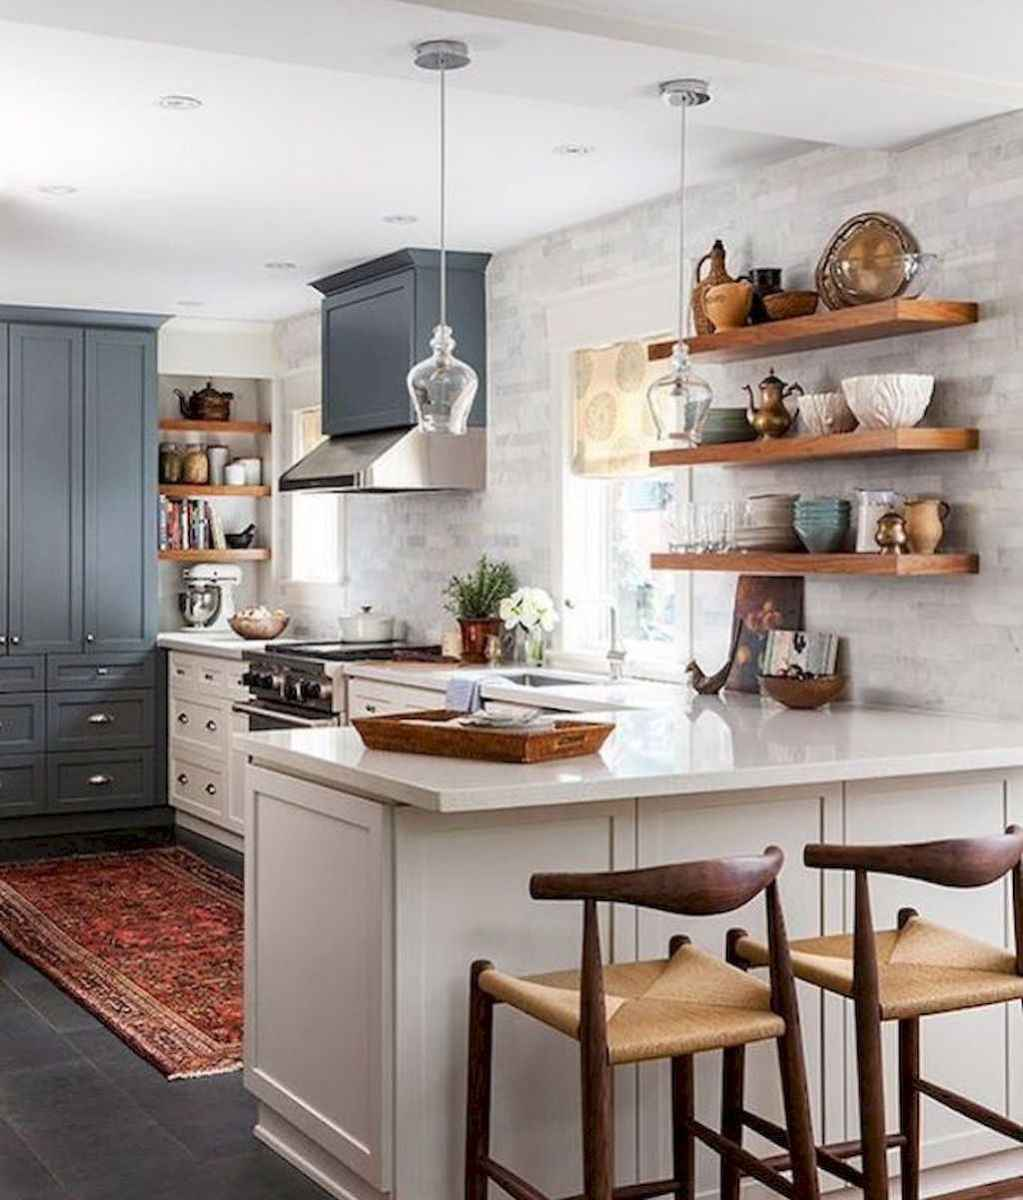 Clever small kitchen remodel and open shelves ideas (43)